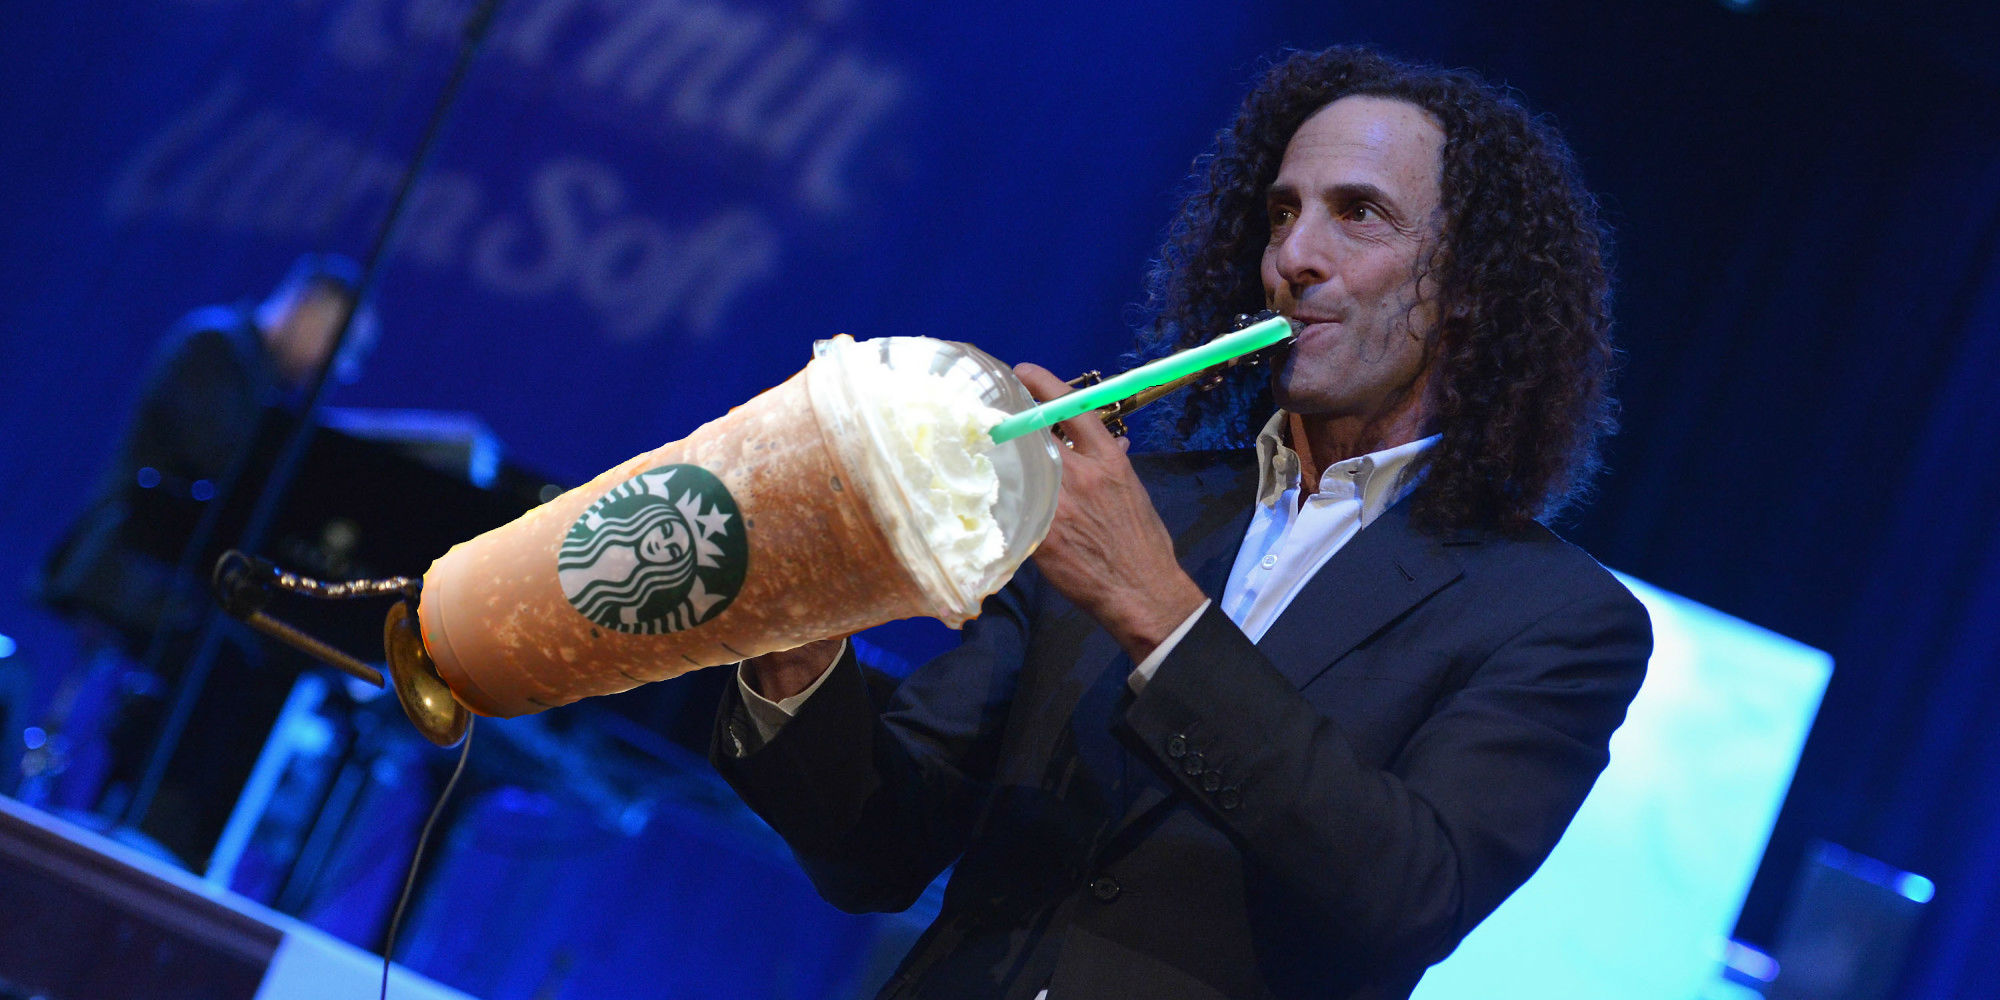 You Have Kenny G to Thank for the Frappuccino